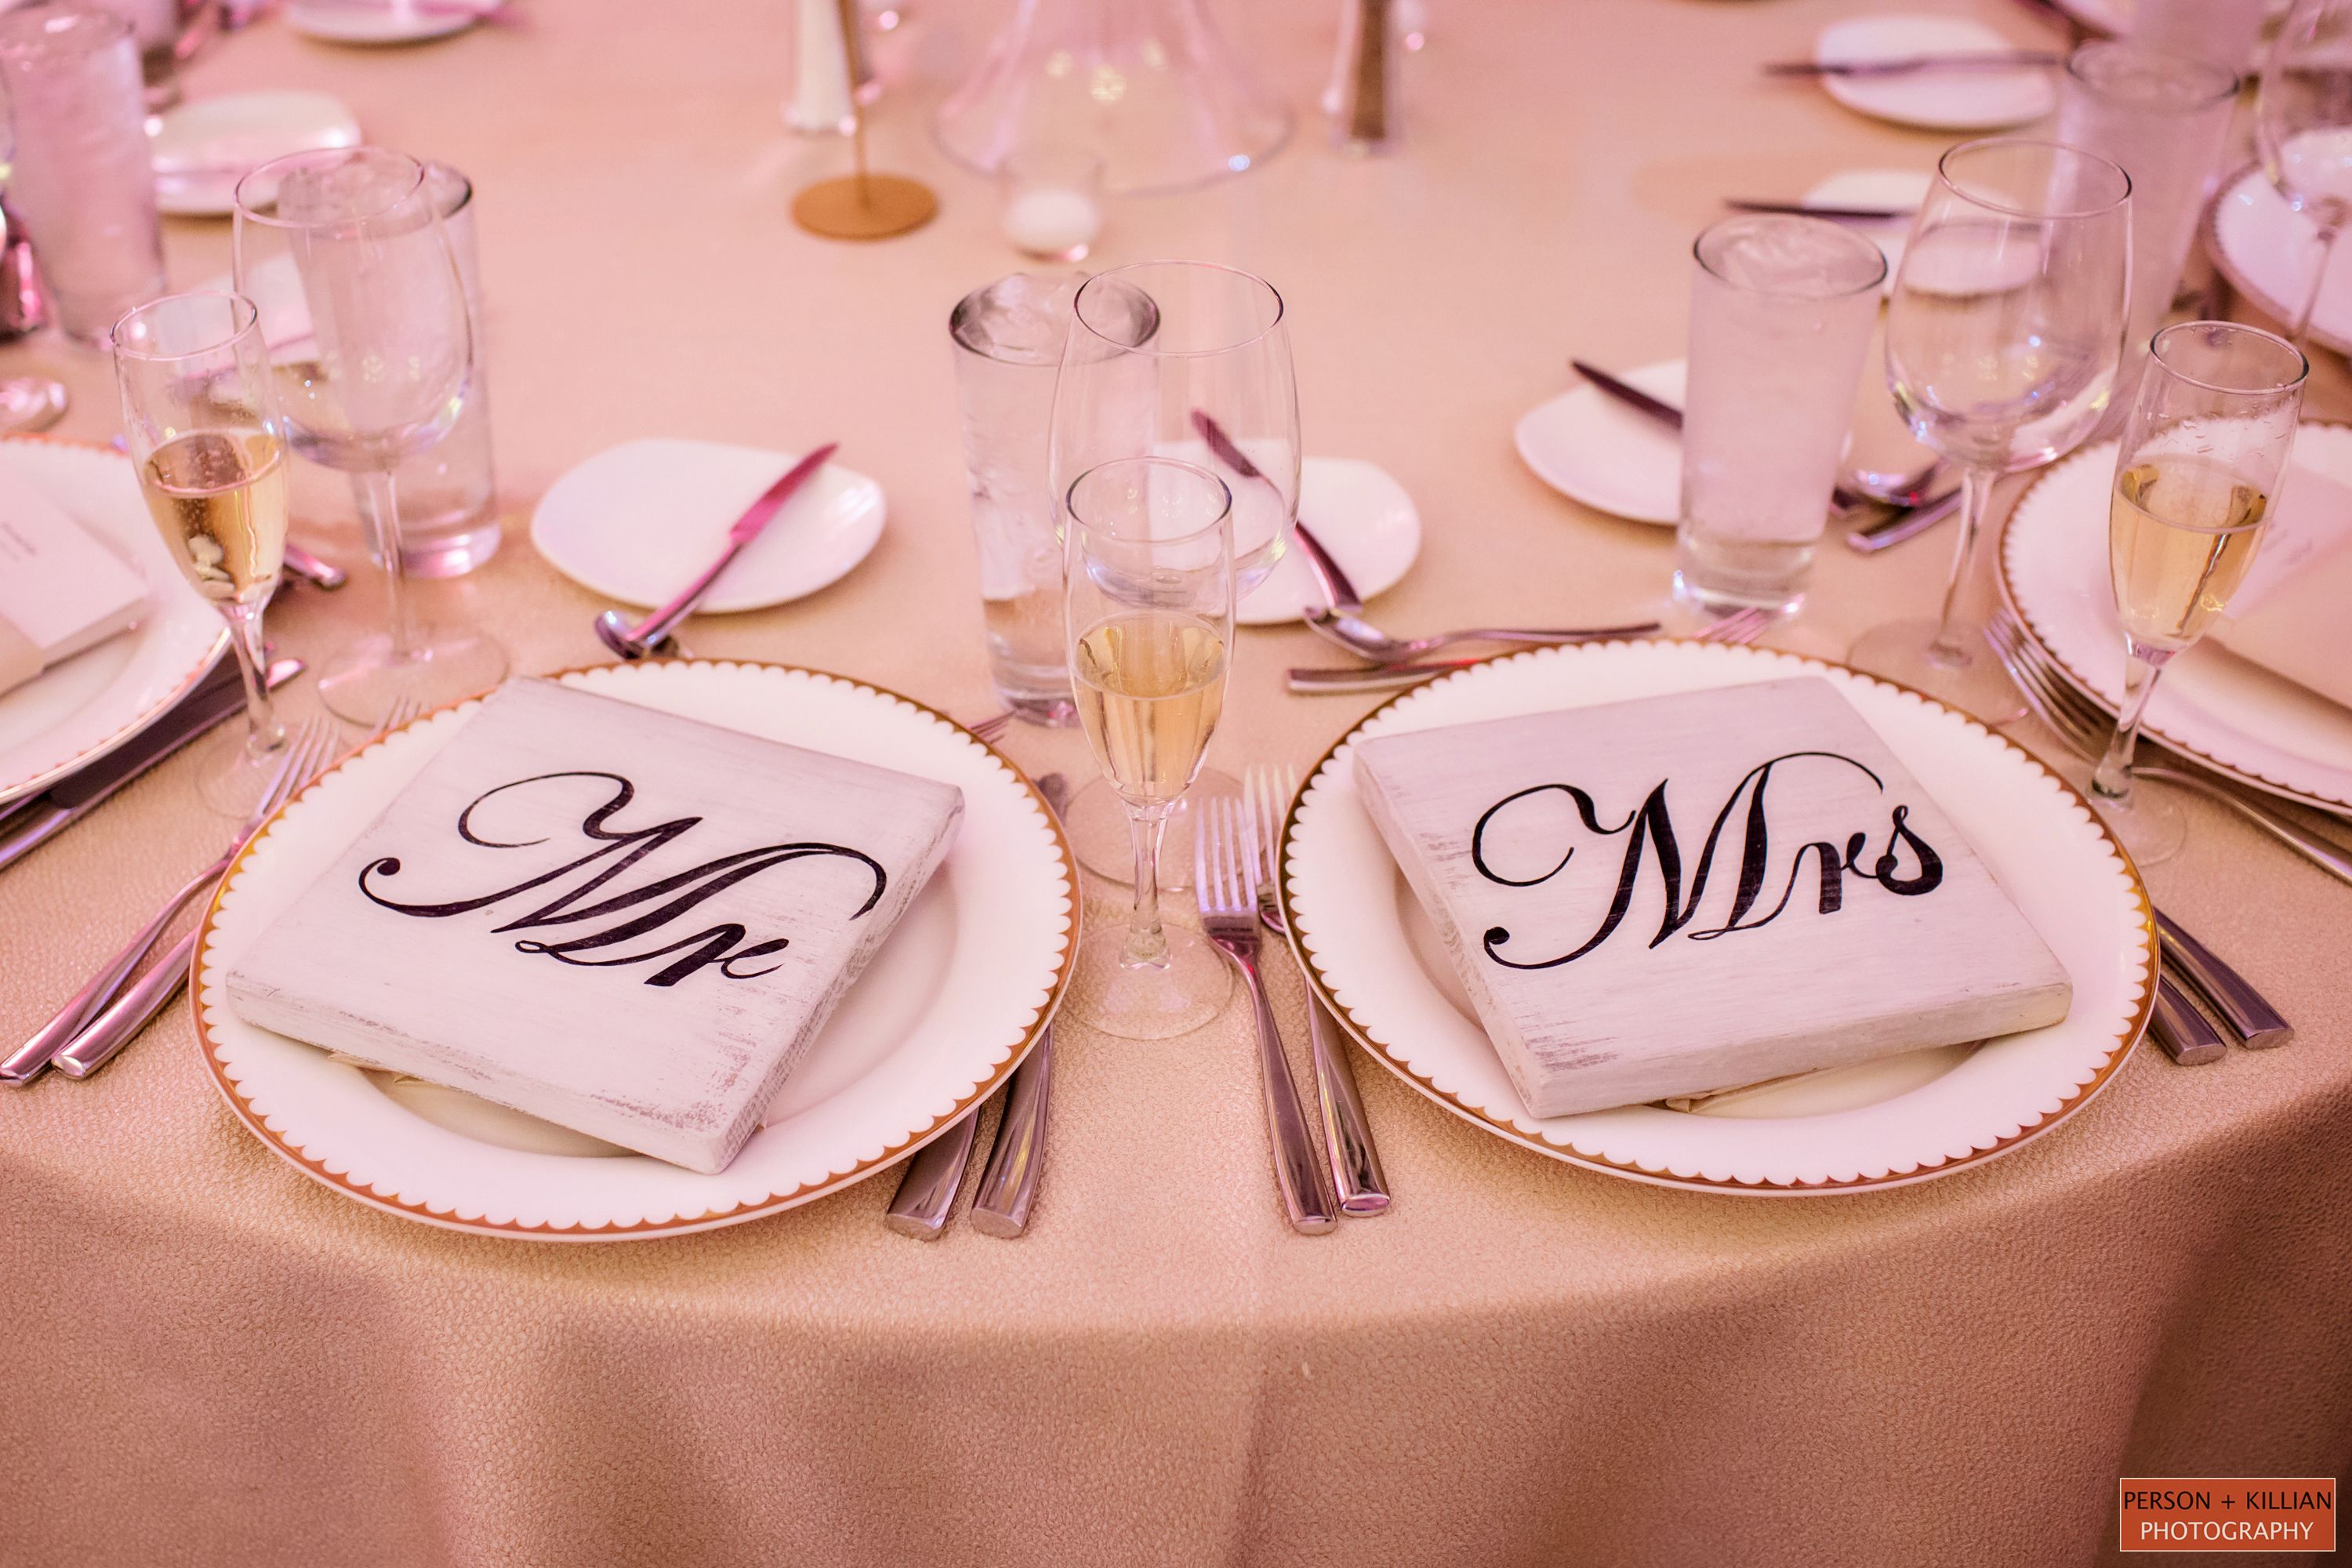 His and hers. Person + Killian Photography #weddings #tabledecor ...